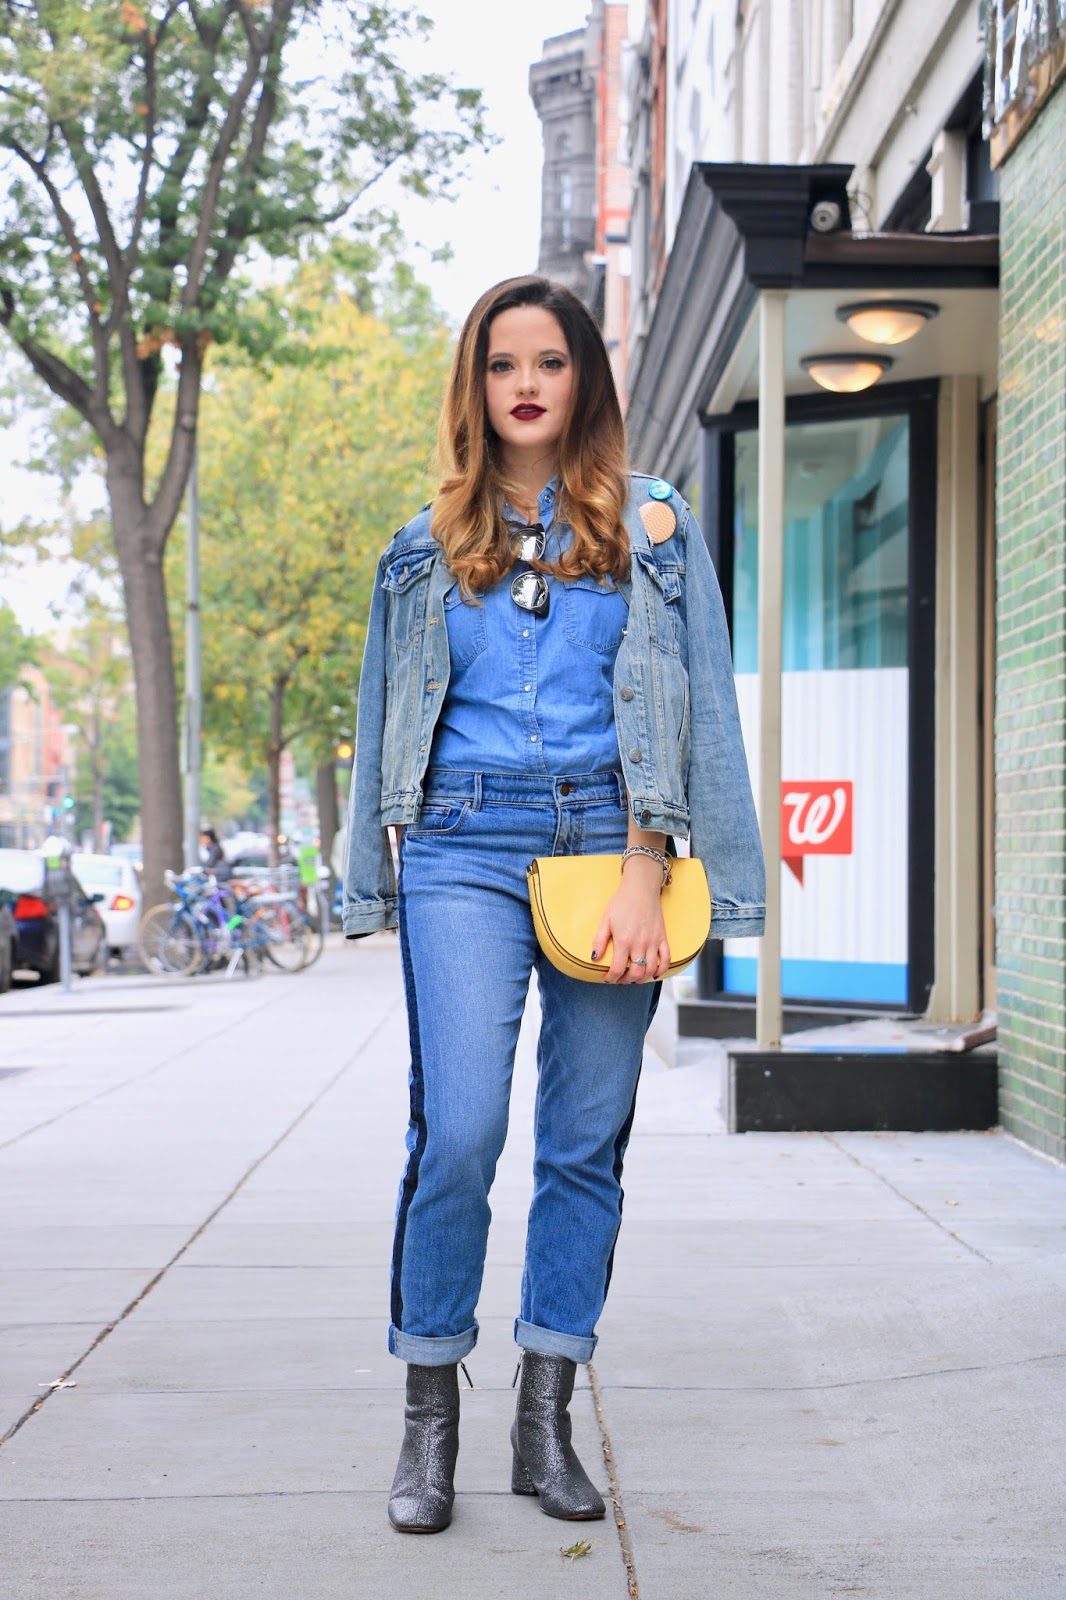 Nyc fashion blogger Kathleen Harper wearing an all denim outfit